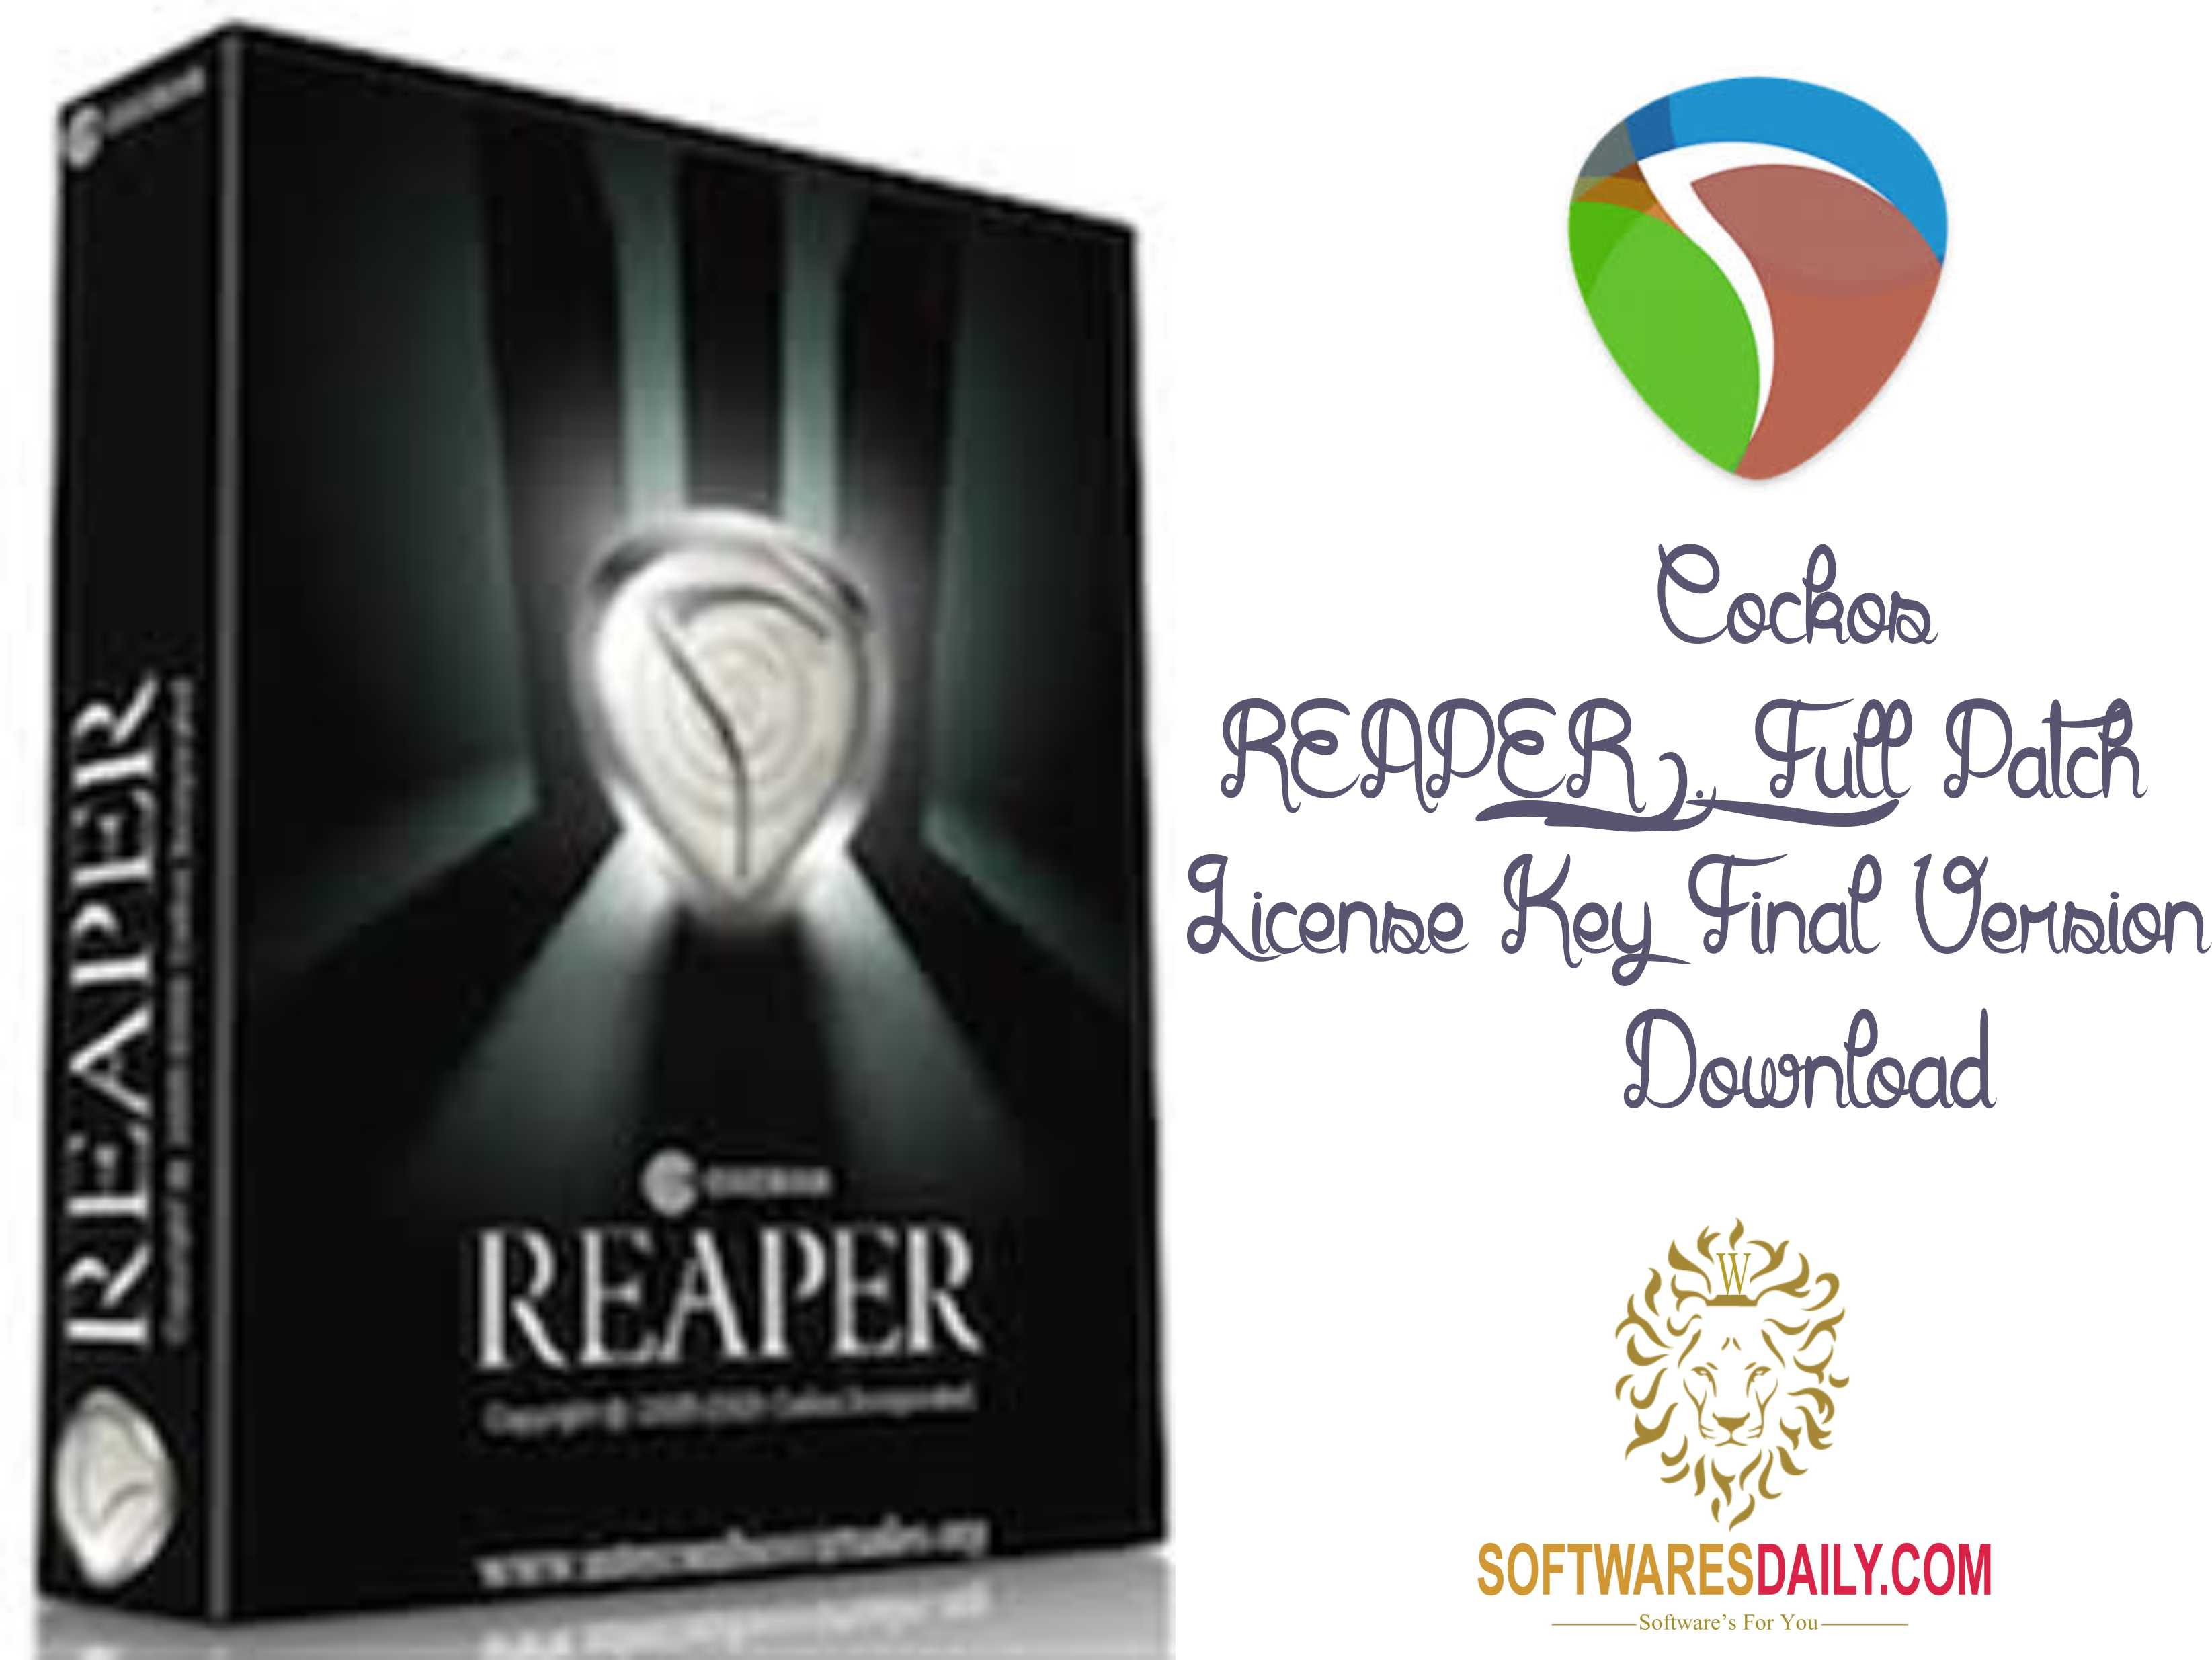 Cockos REAPER 5.60 Full Patch & License Key Final Version Download